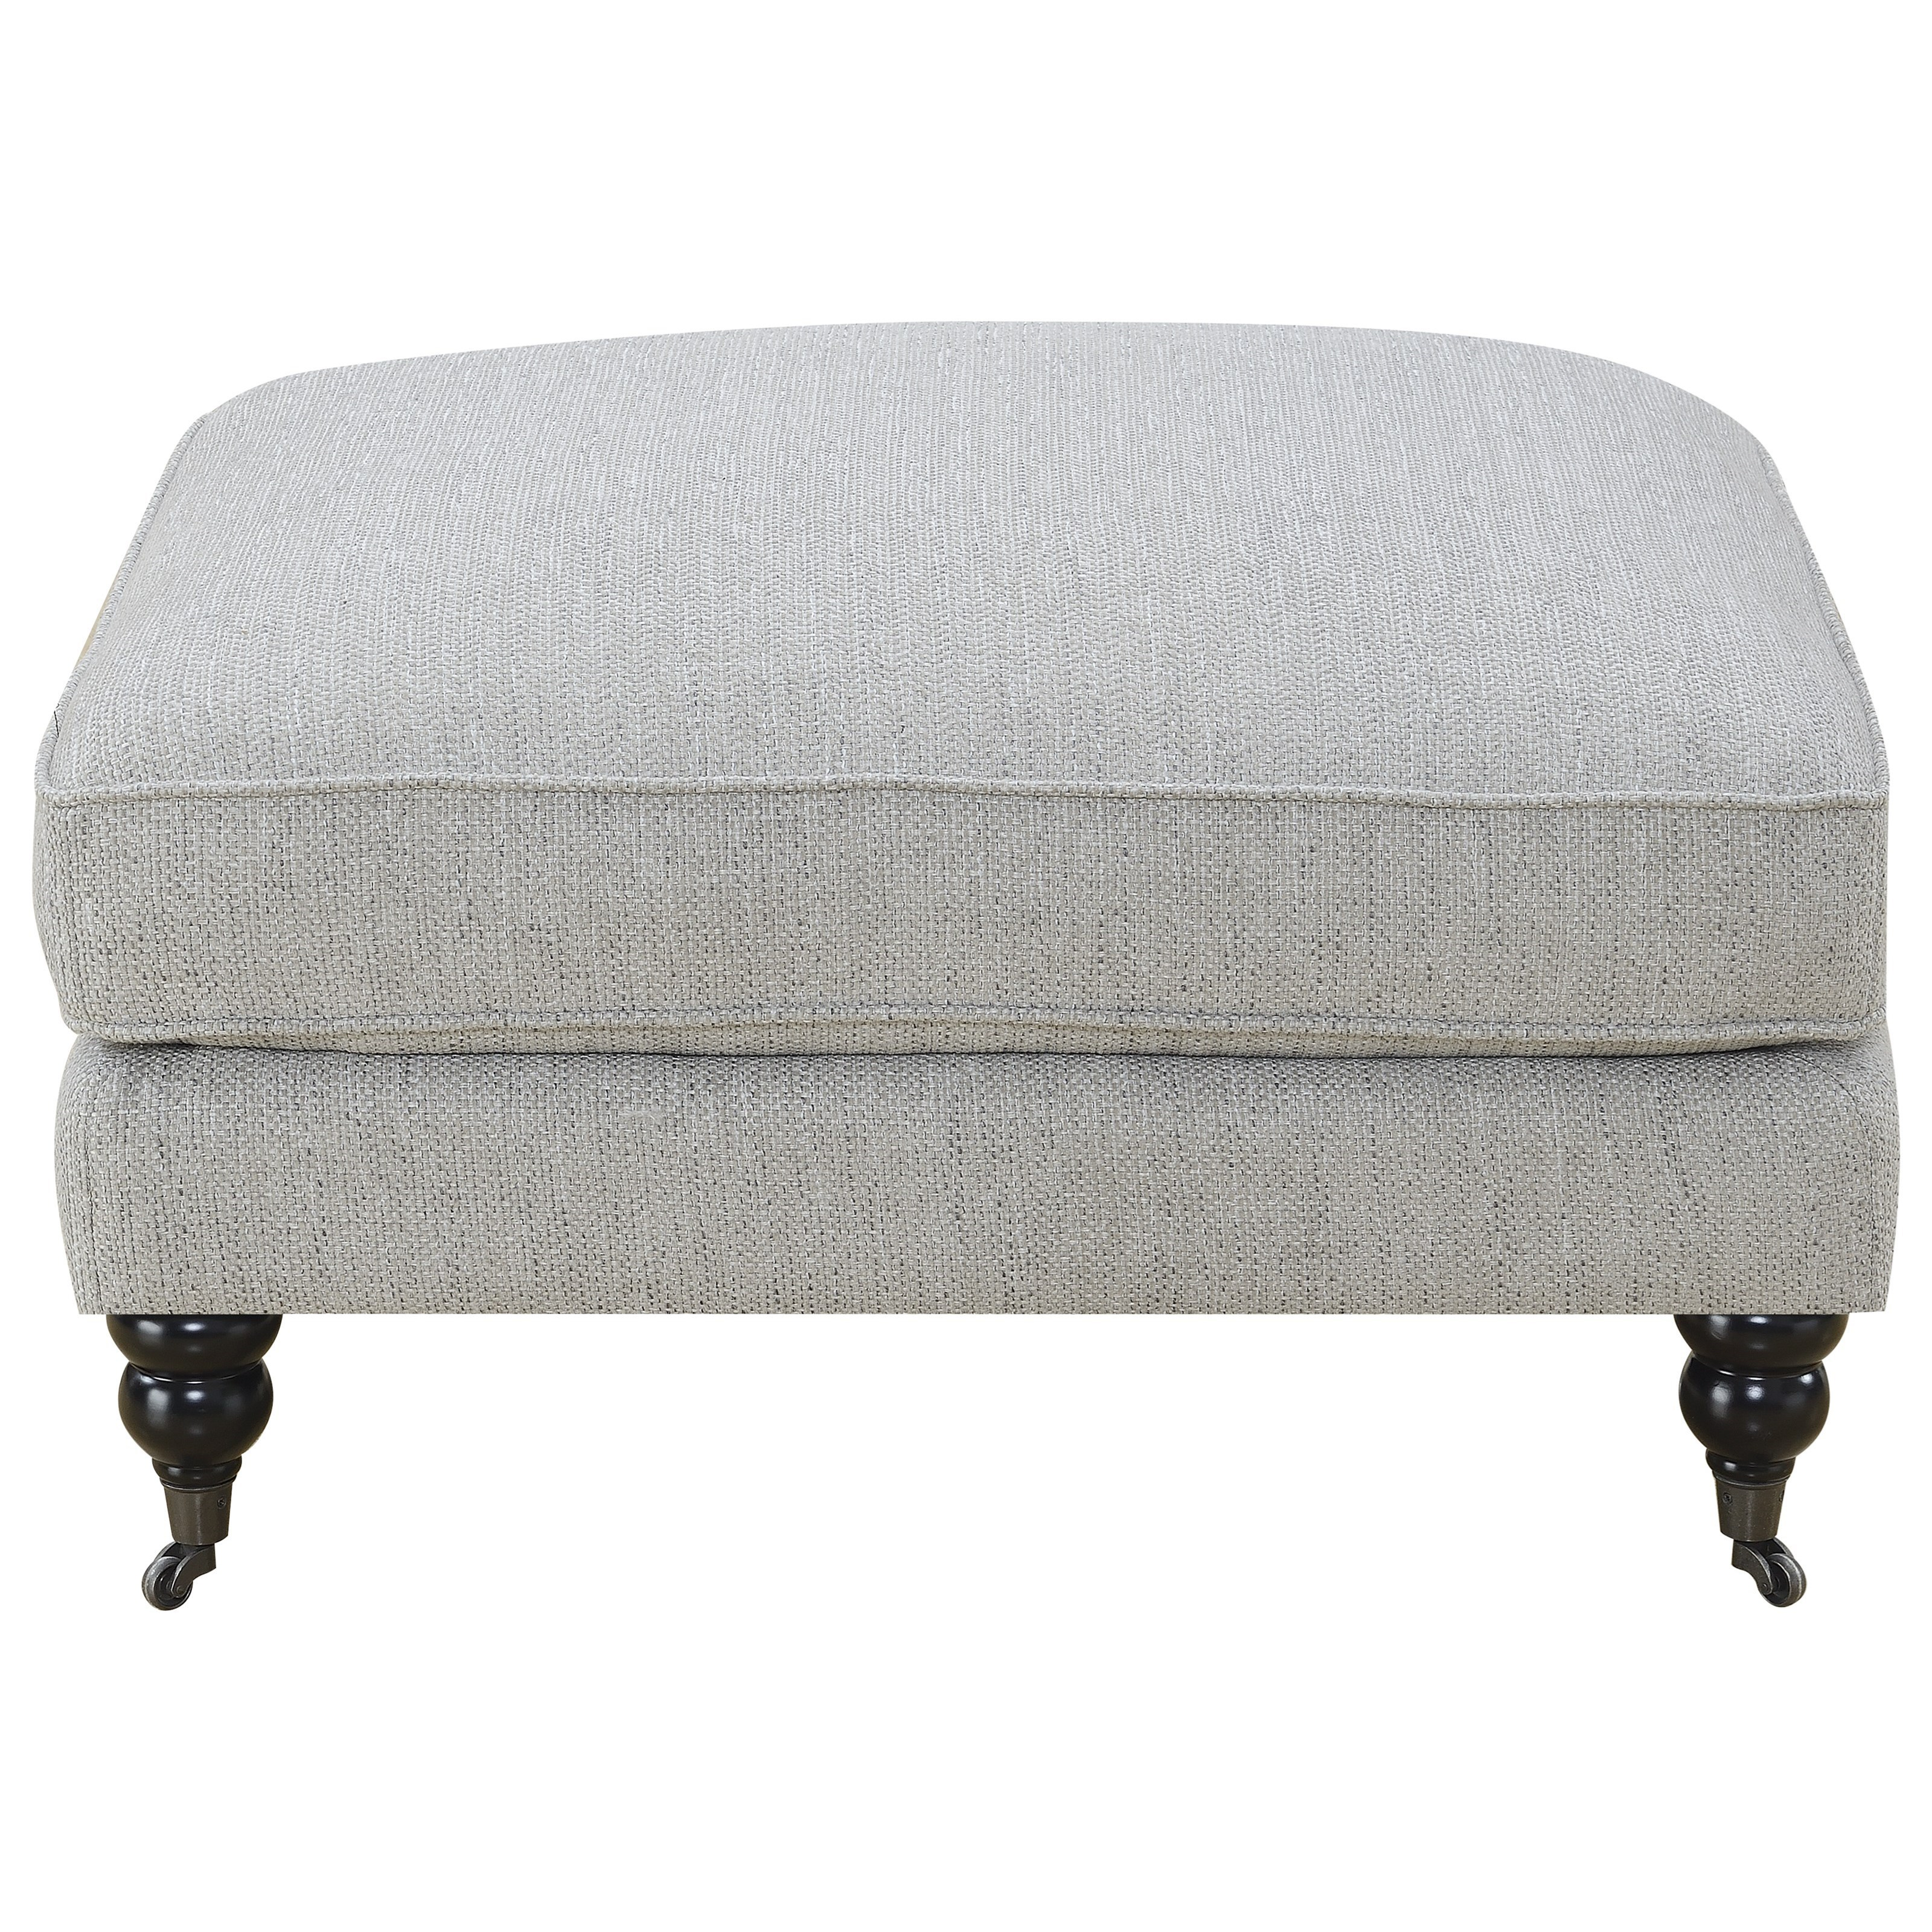 Amelie Cocktail Ottoman by Emerald at Northeast Factory Direct